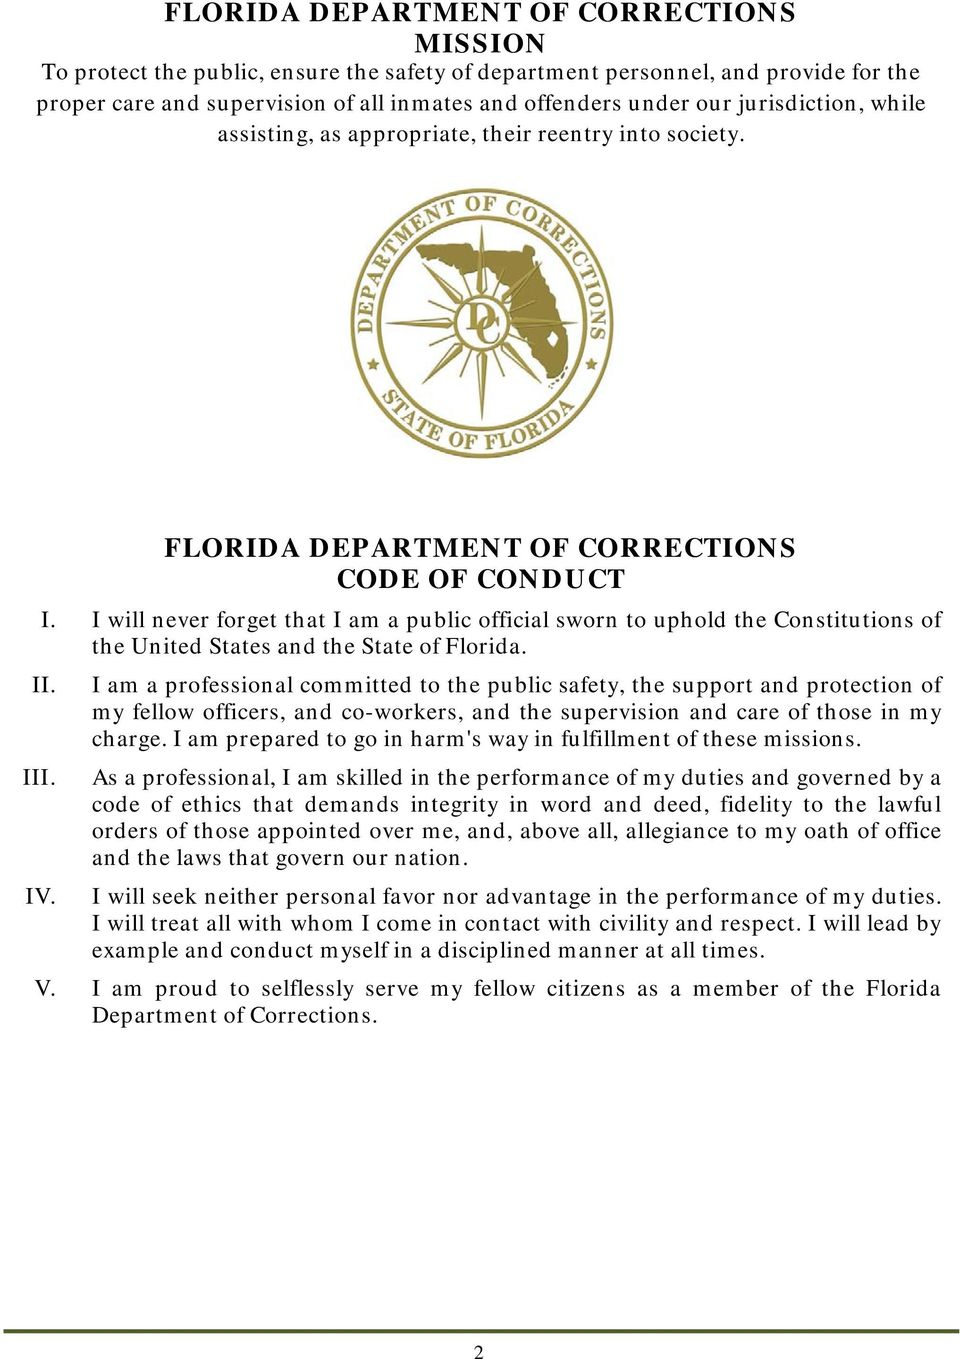 I will never forget that I am a public official sworn to uphold the Constitutions of the United States and the State of Florida. II. III.